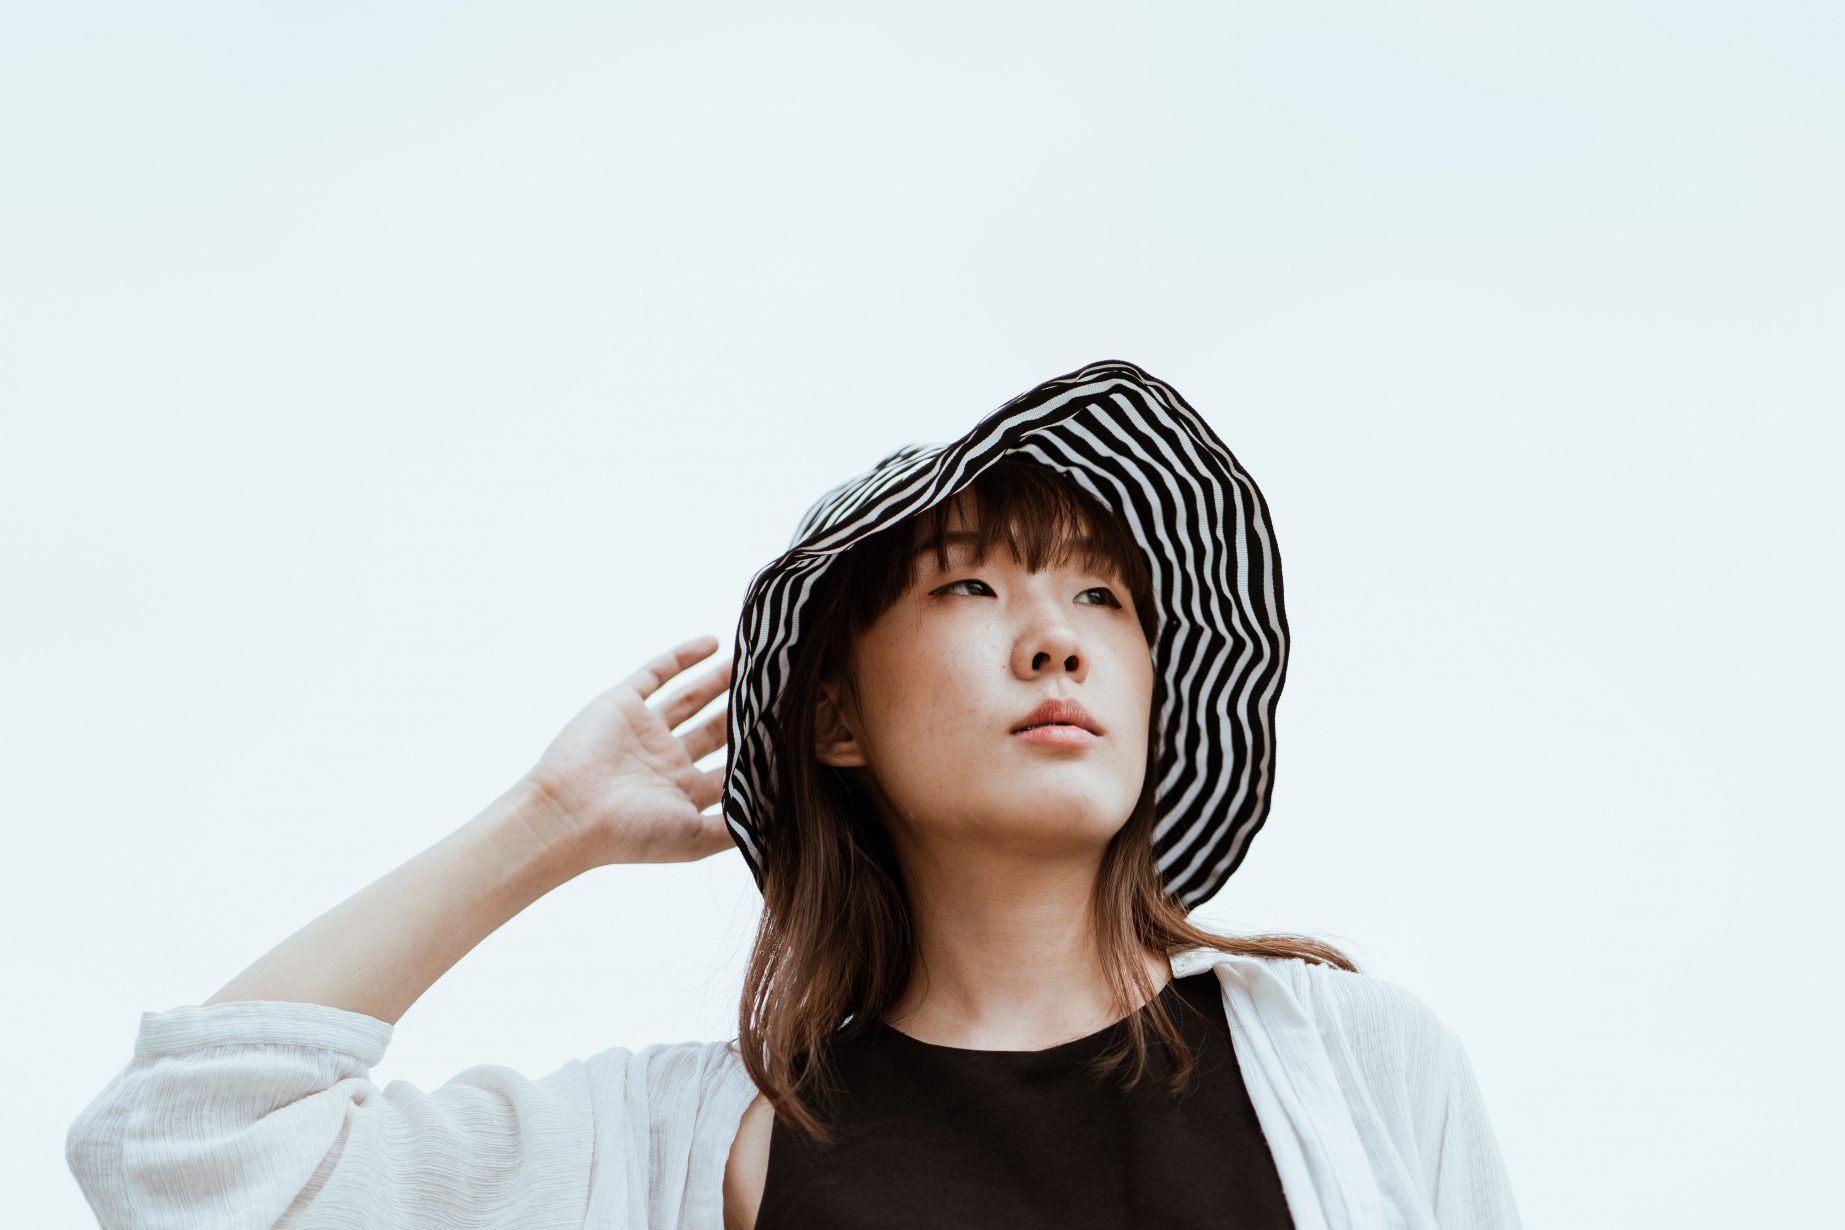 dreamy-asian-woman-in-hat-touching-head-on-blue-background-4429564